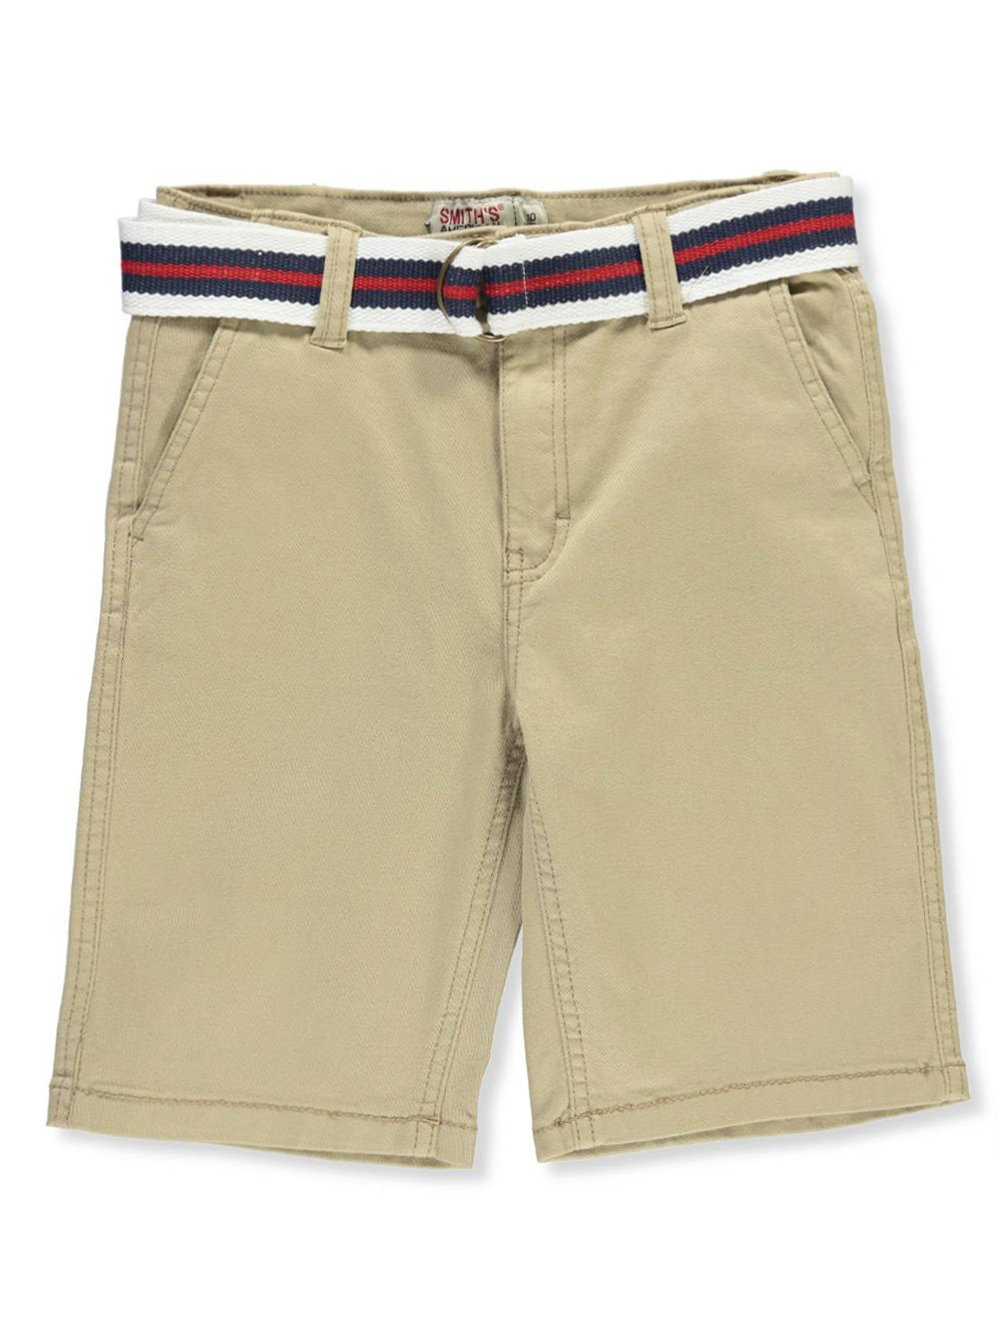 Smith's American Boys' Belted Shorts 12 Smith' s American